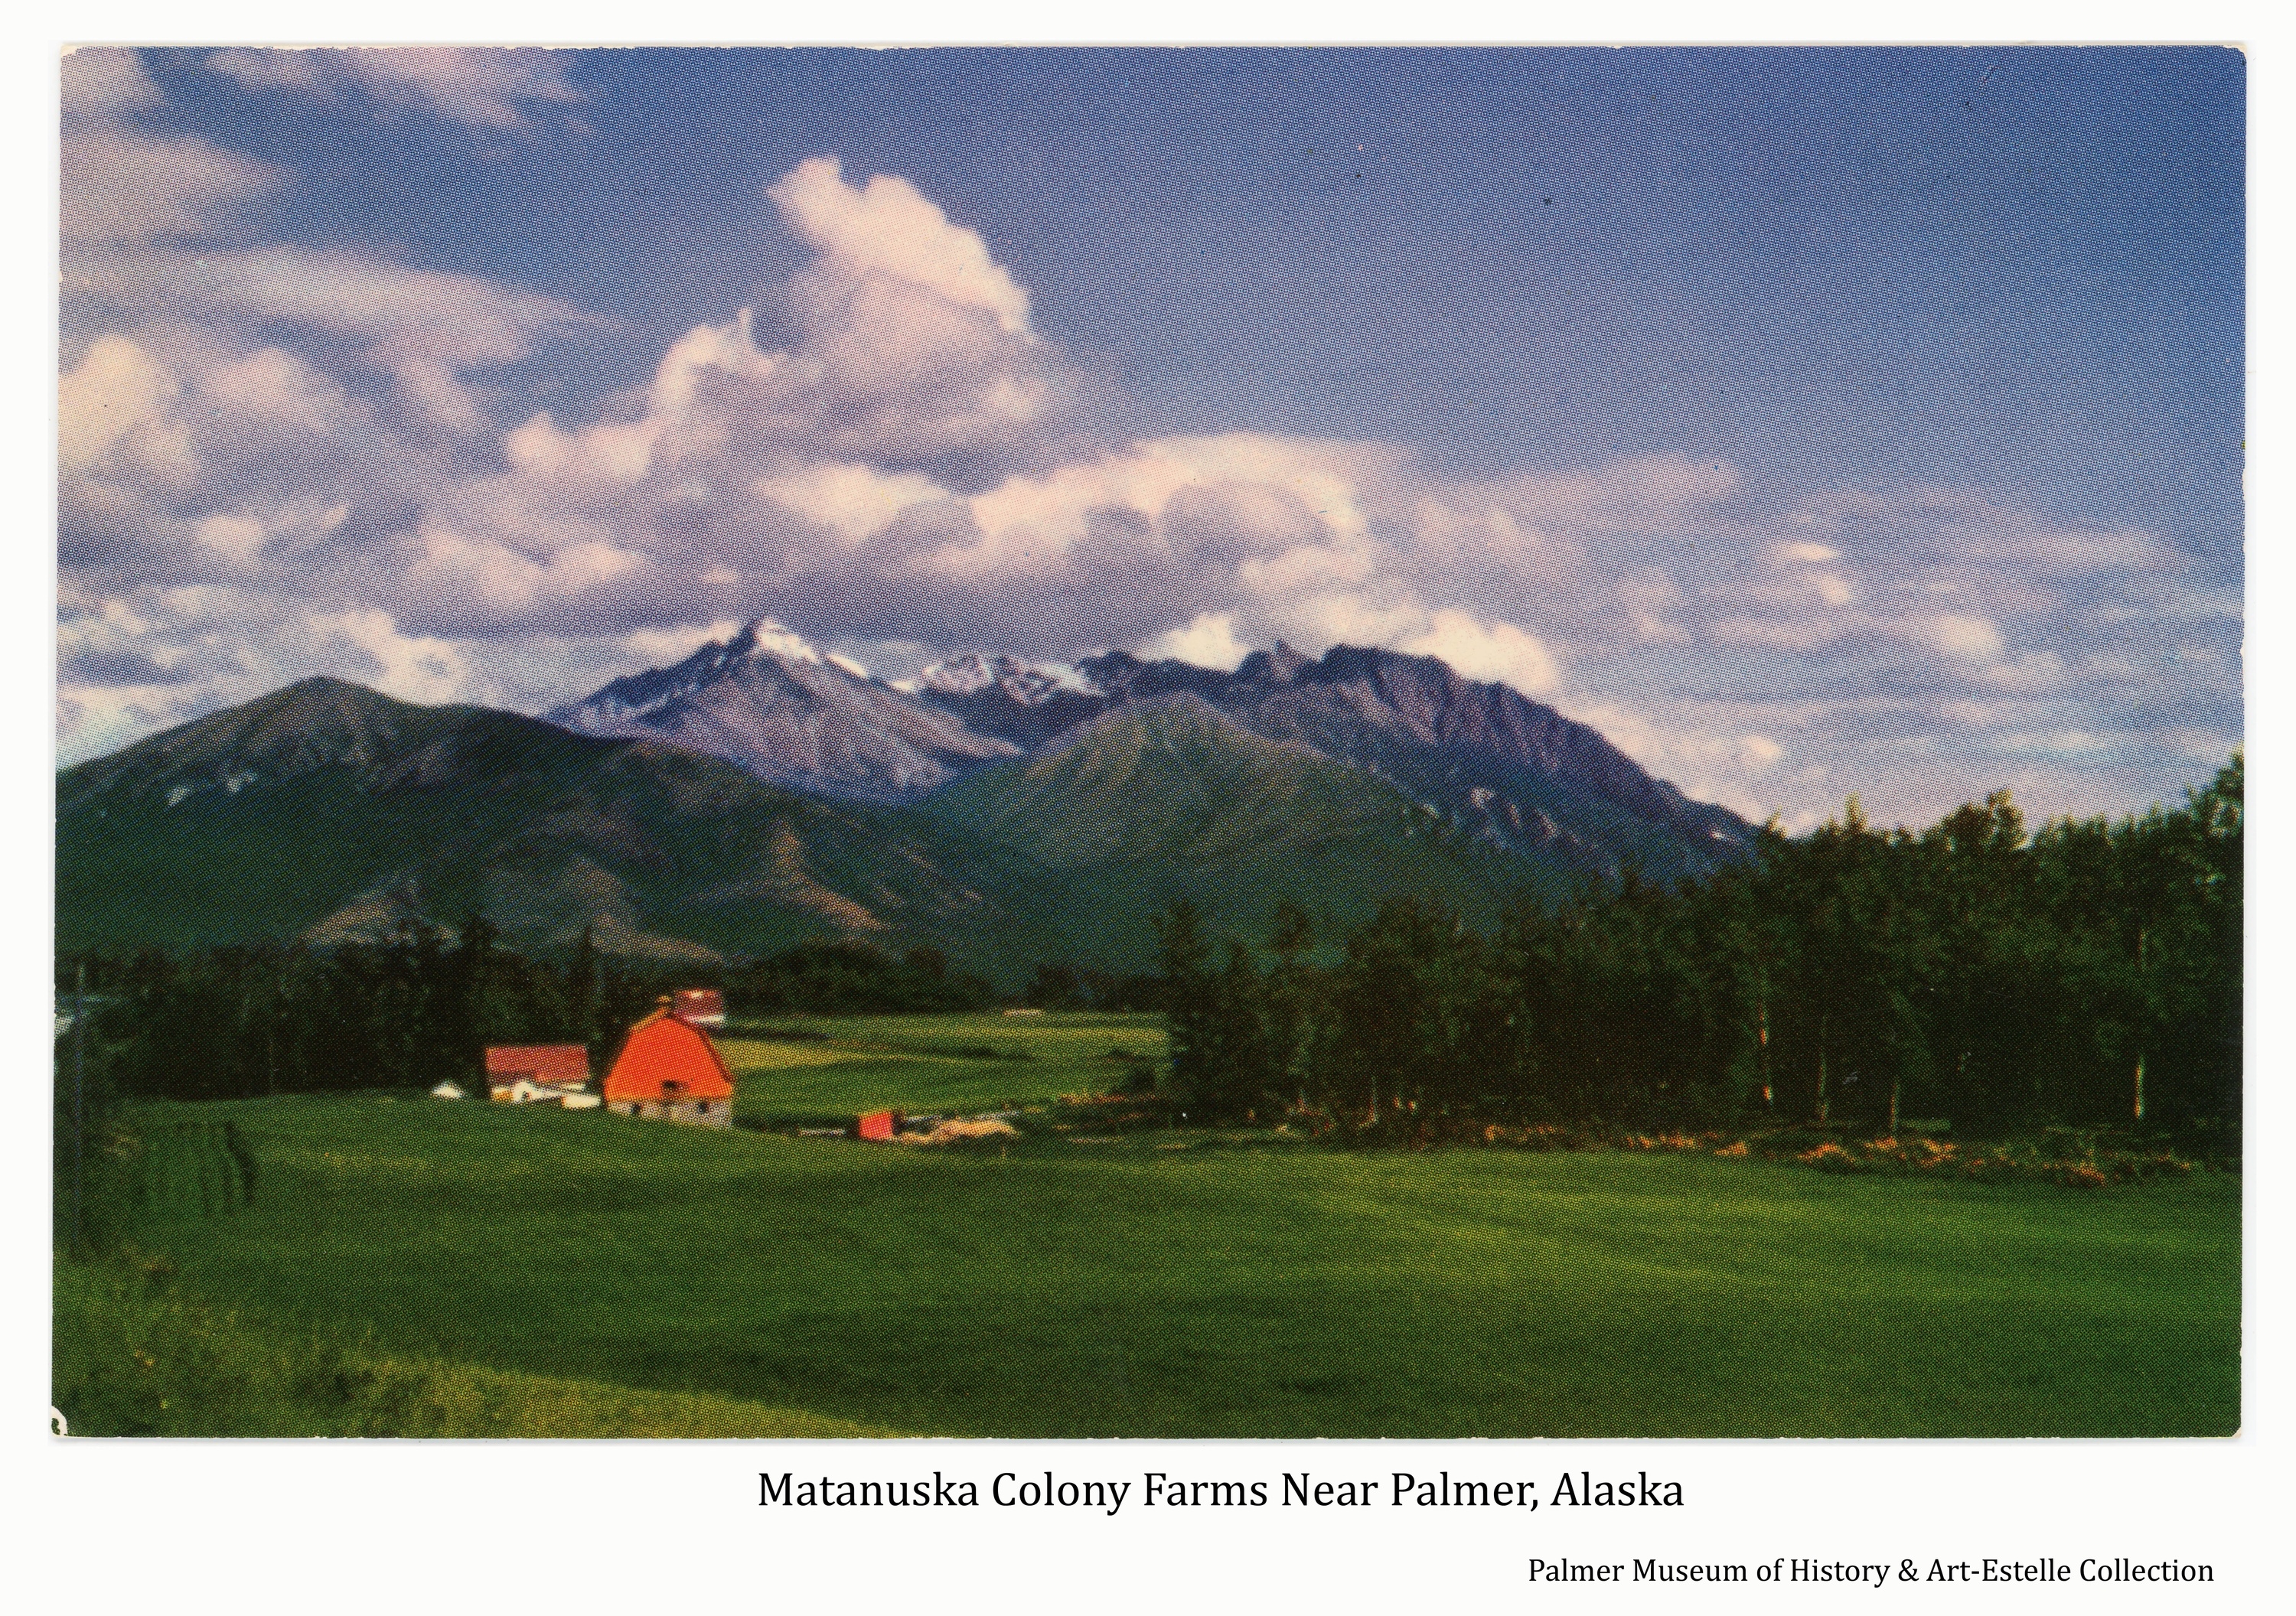 Image is a late summer easterly view of a green hay field in foreground with an orange Colony barn and other farm buildings on Colony tract #169 in middle ground.  Another Colony barn on tract #112 is visible beyond.  Patches of uncut forest are apparent.  Lazy Mountain and Beyers Peak, dusted with new snow, are in background with clouds overhead.